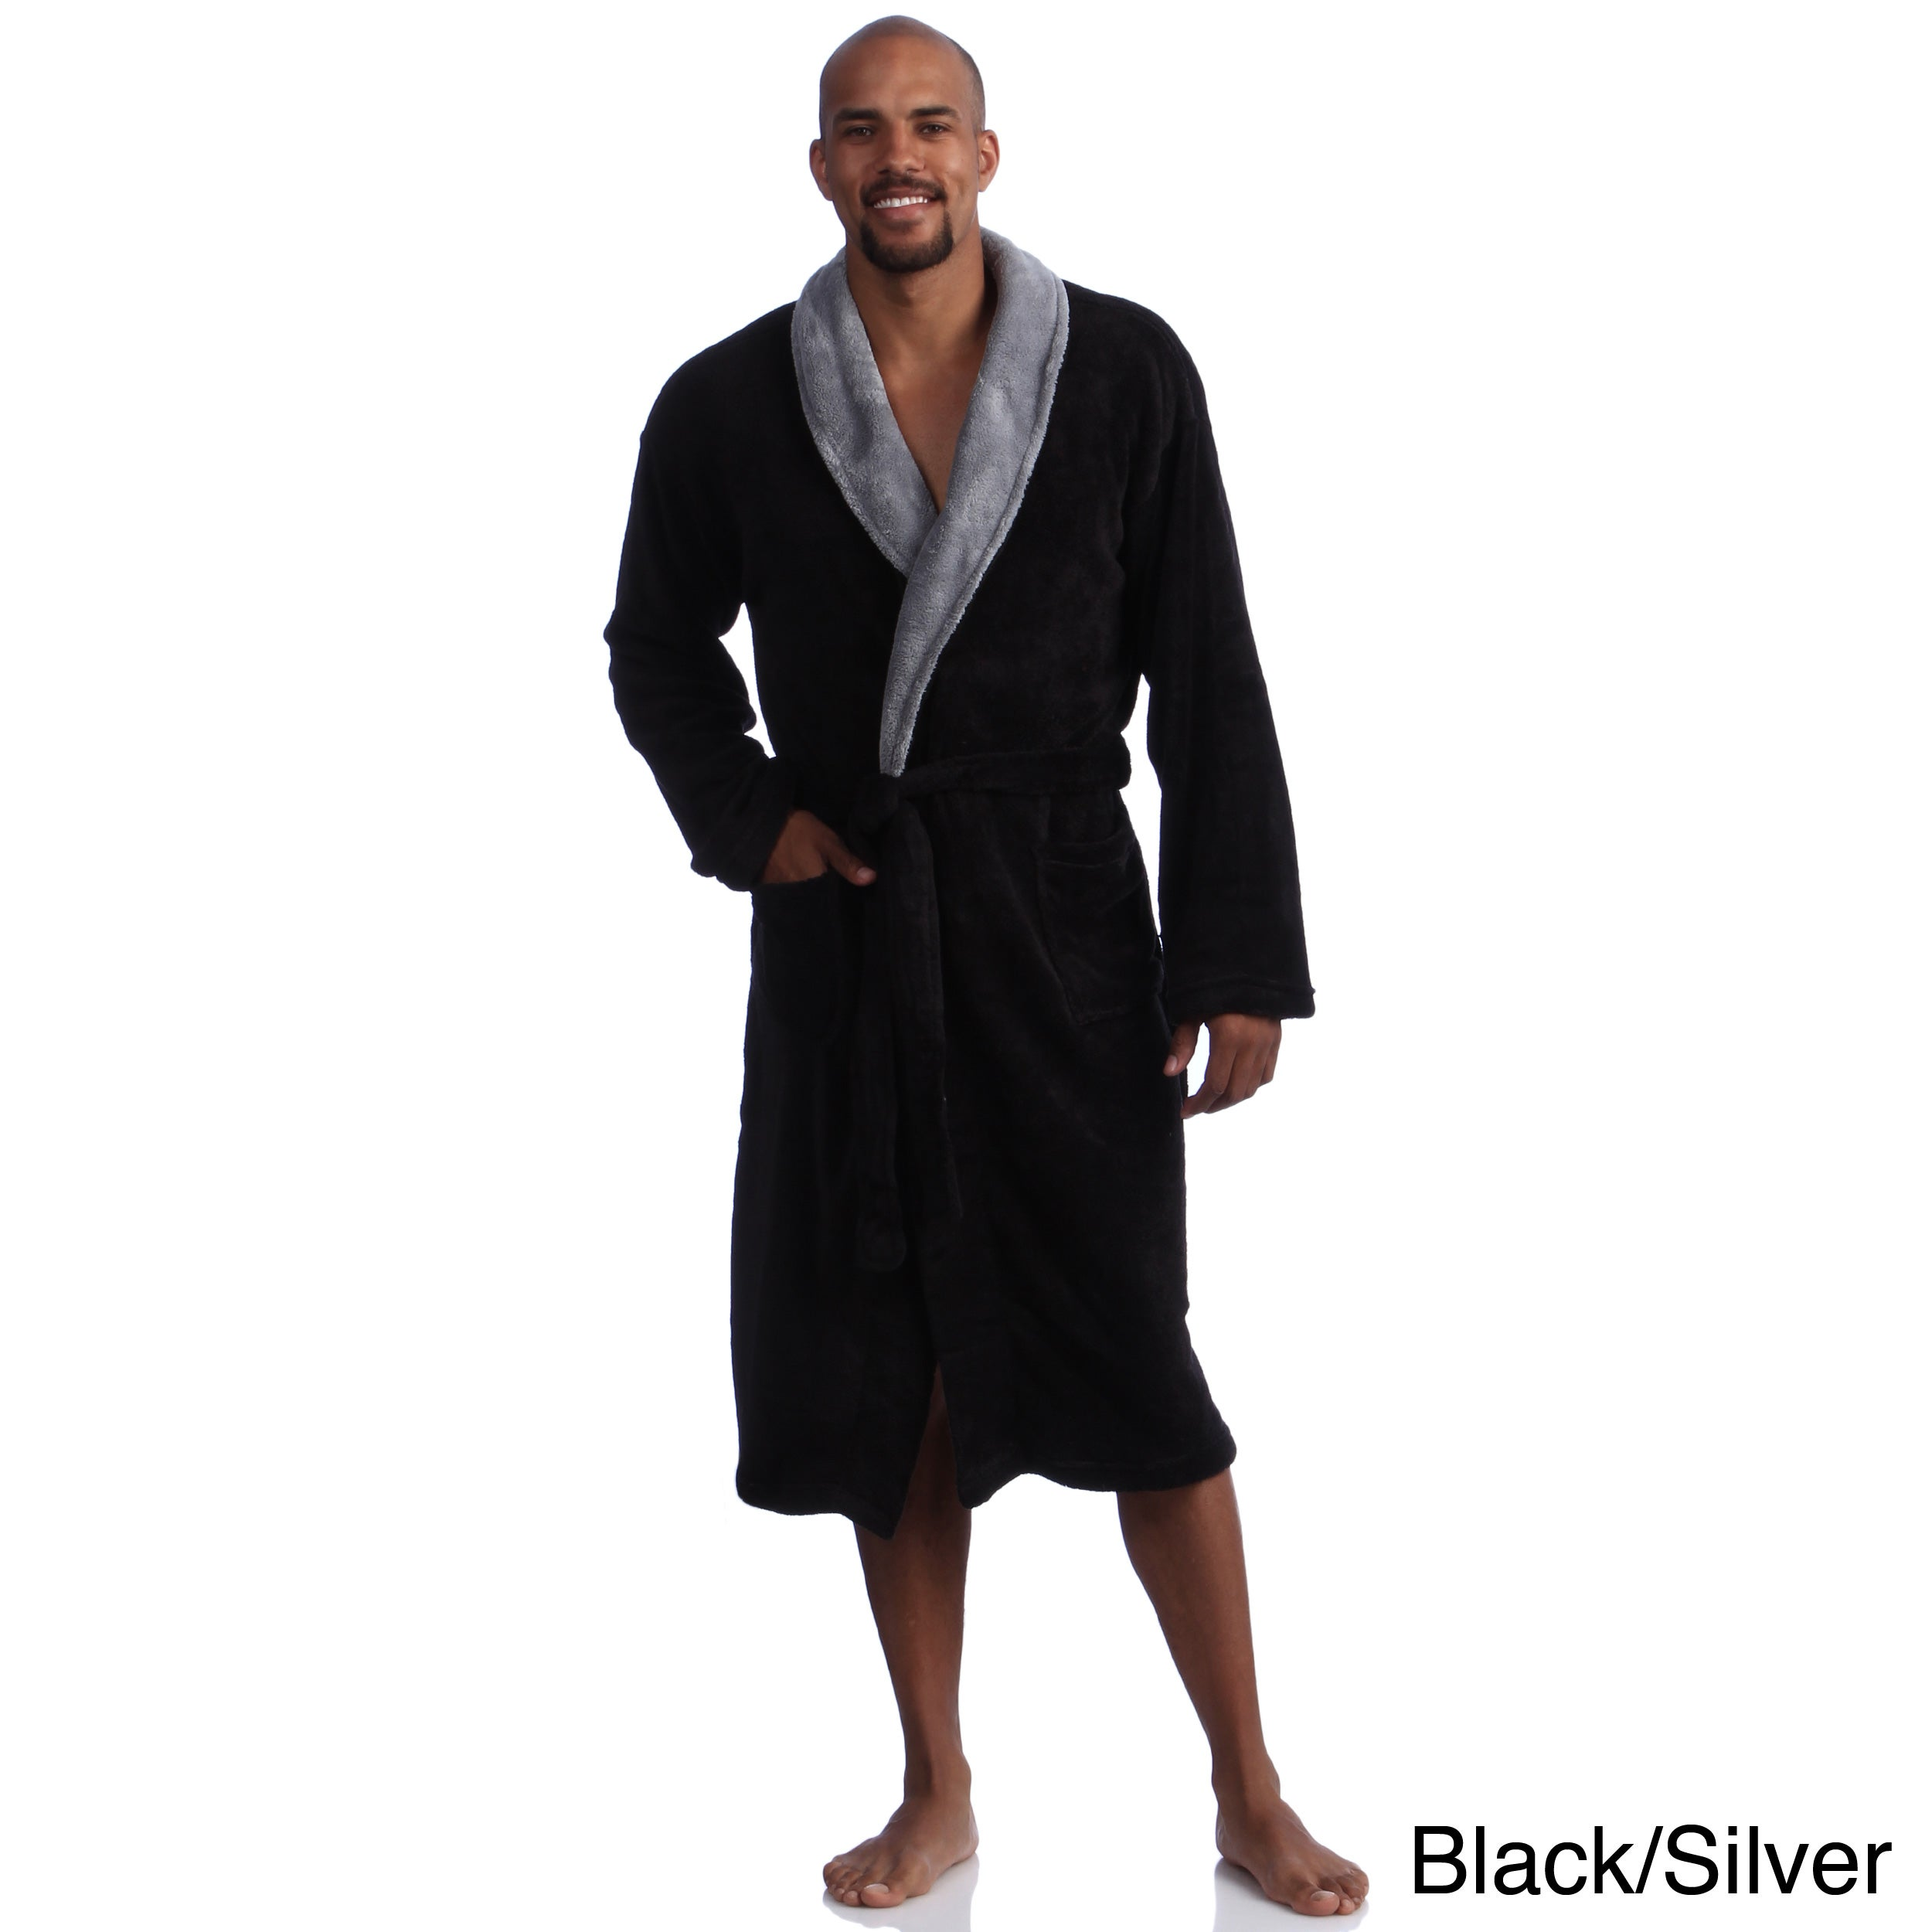 909557e680 Shop Pipeline Men s Micro Plush Bath Robe - Free Shipping Today - Overstock  - 8175808